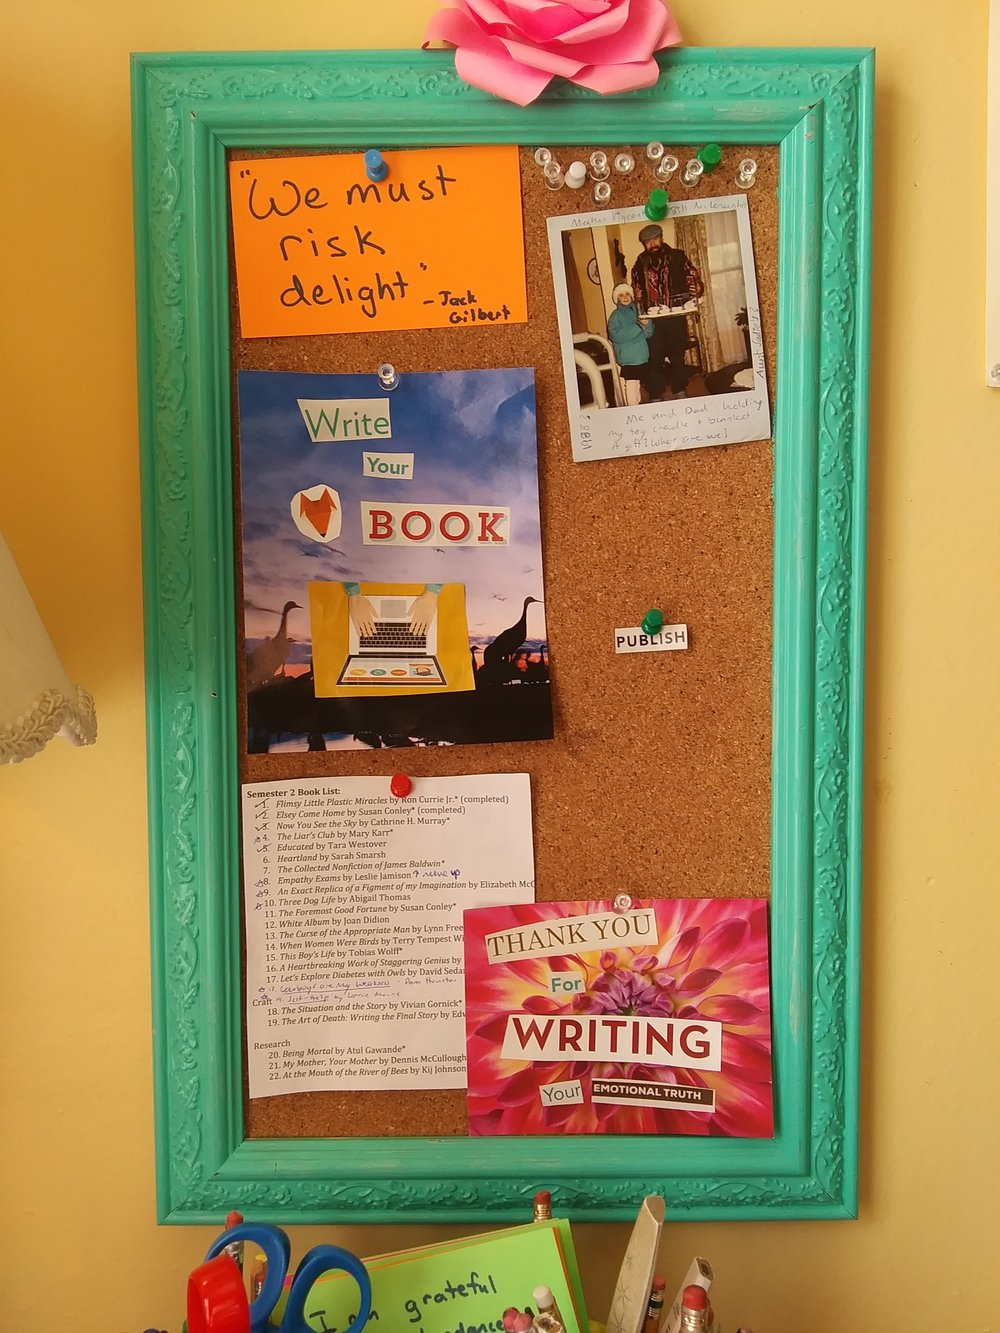 Bulletin board inspirations at my writing desk.